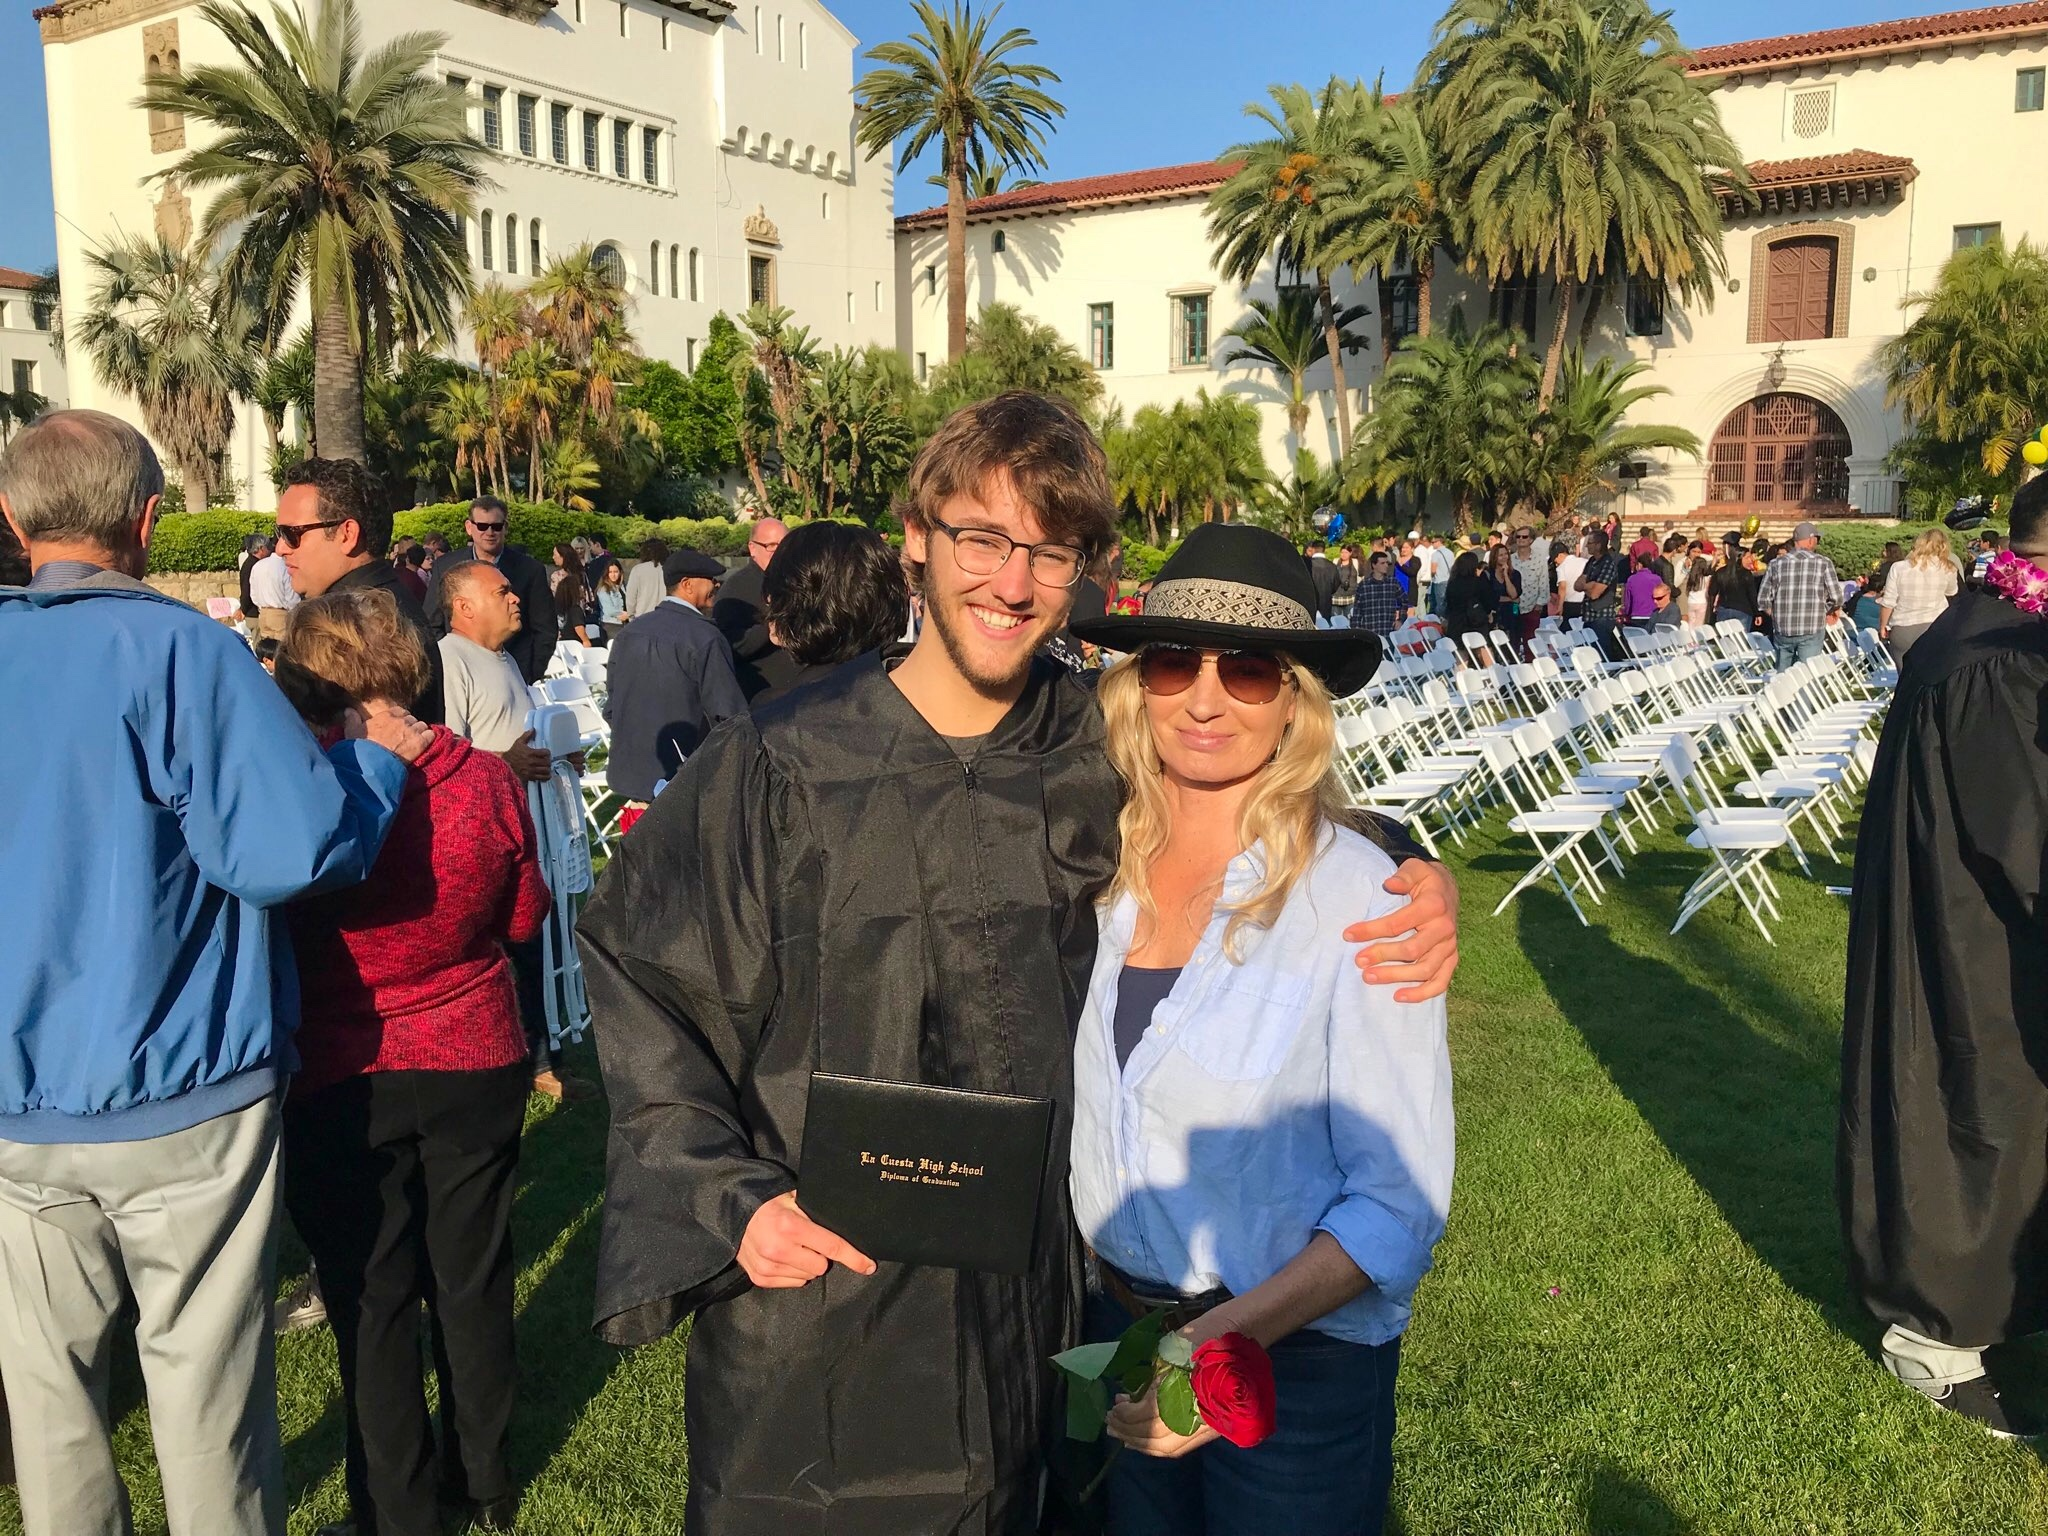 Jack Miles, and his mom, Colleen, pose for a photo after Jack received his high school diploma from La Cuesta Continuation High School last week.